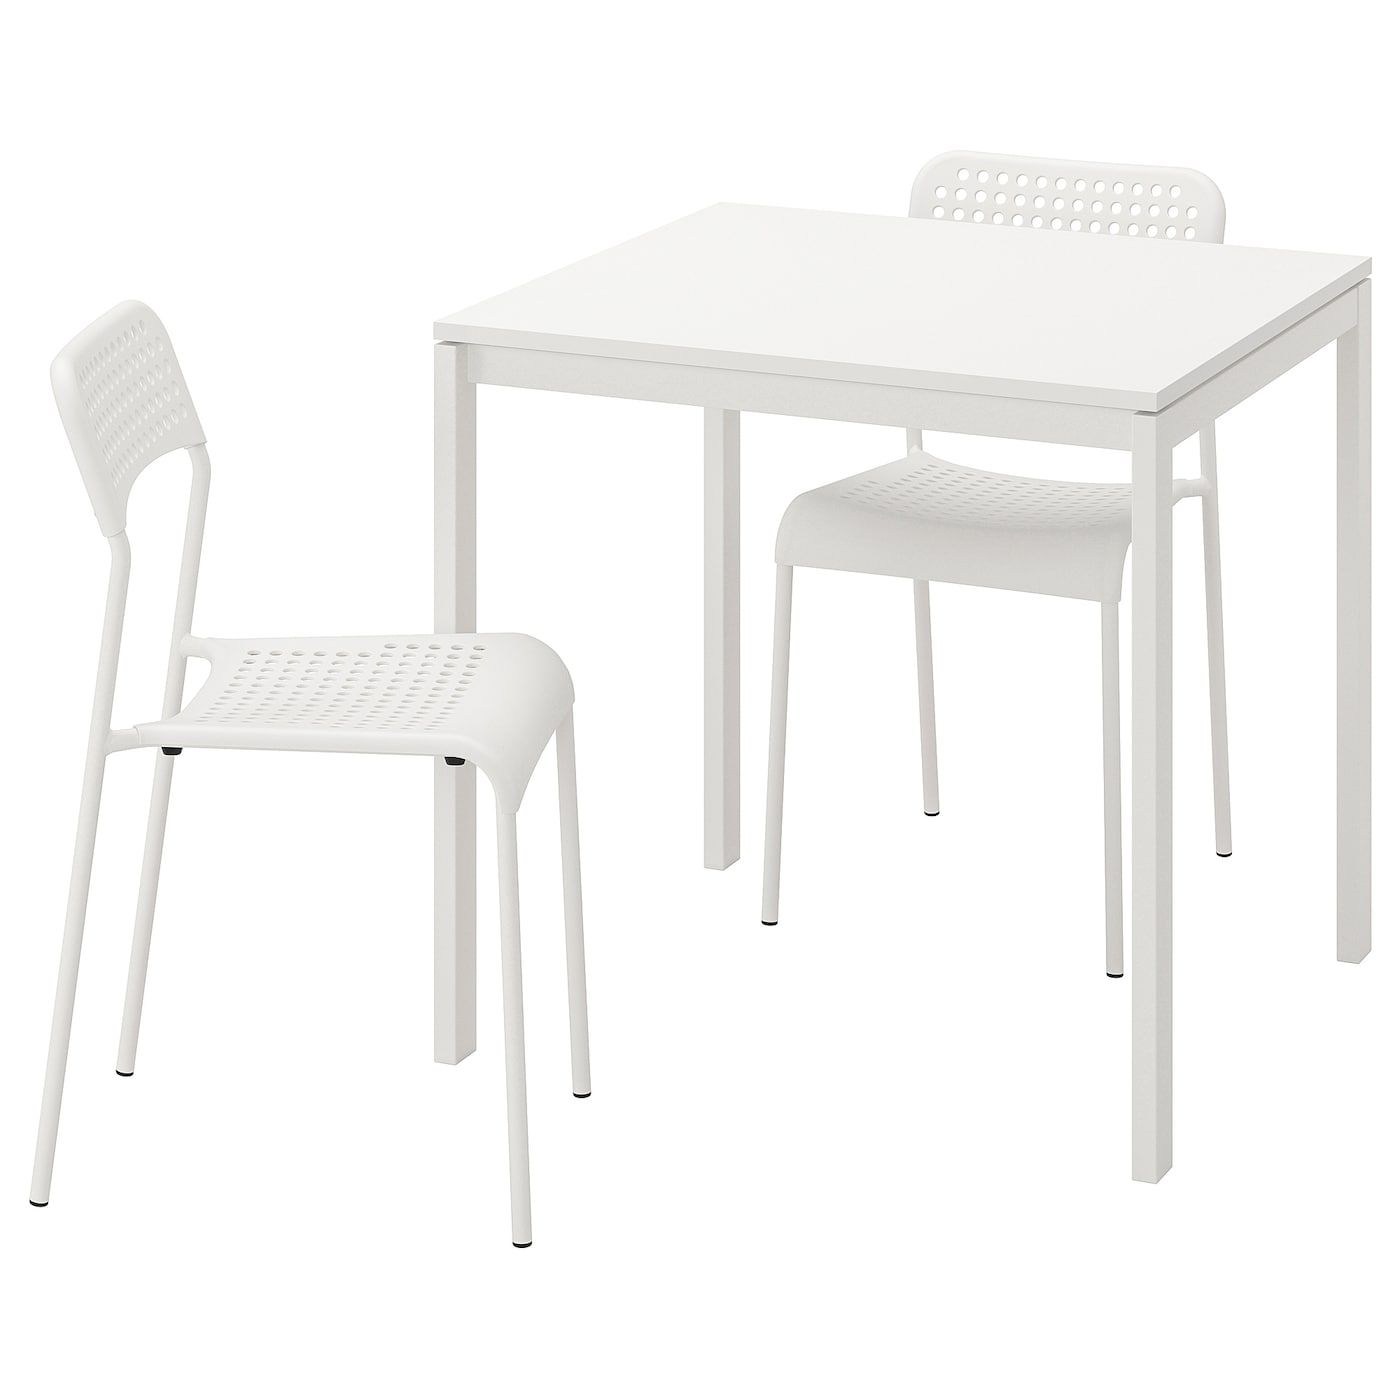 Melltorp Adde Table And 2 Chairs White 29 1 2 In 2020 Ikea